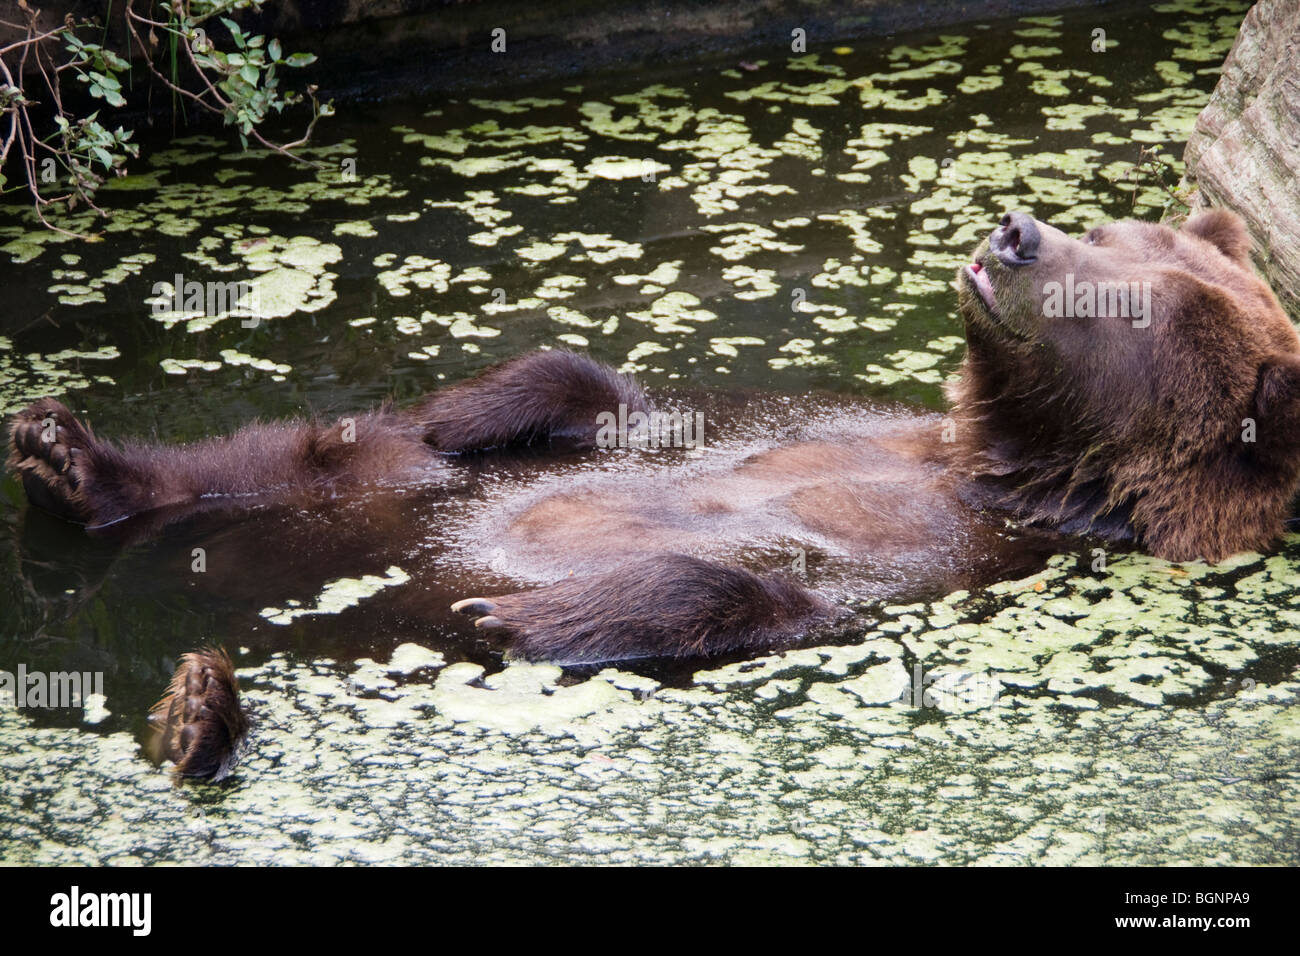 A brown bear at Cologne Zoo Germany relaxes in the pool in its enclosure - Stock Image